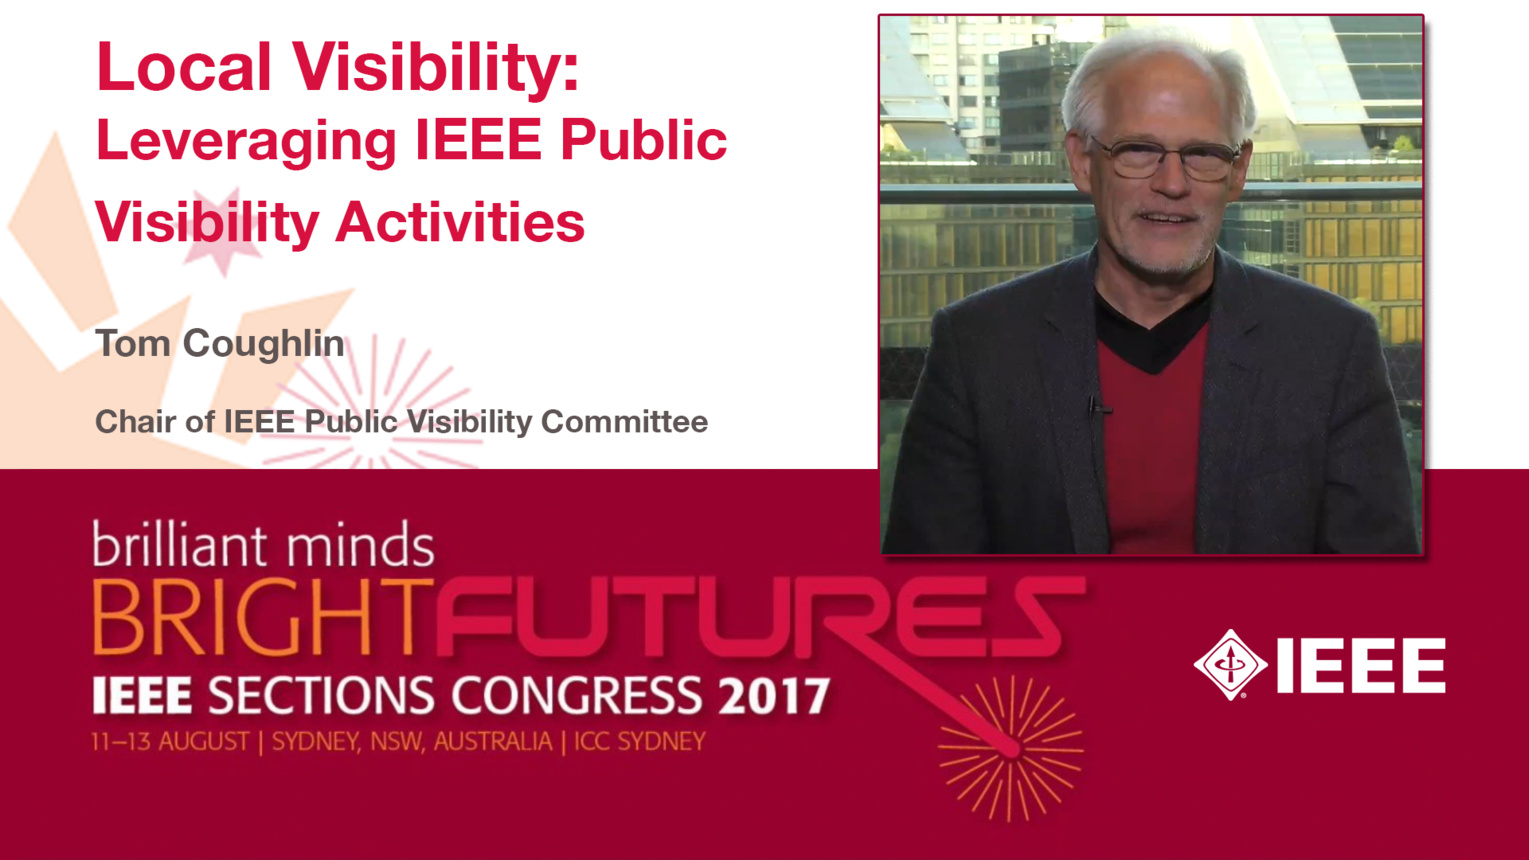 Tom Coughlin: Local Visibility - Leveraging IEEE Public Visibility Activities — Studio Tech Talks: Sections Congress 2017